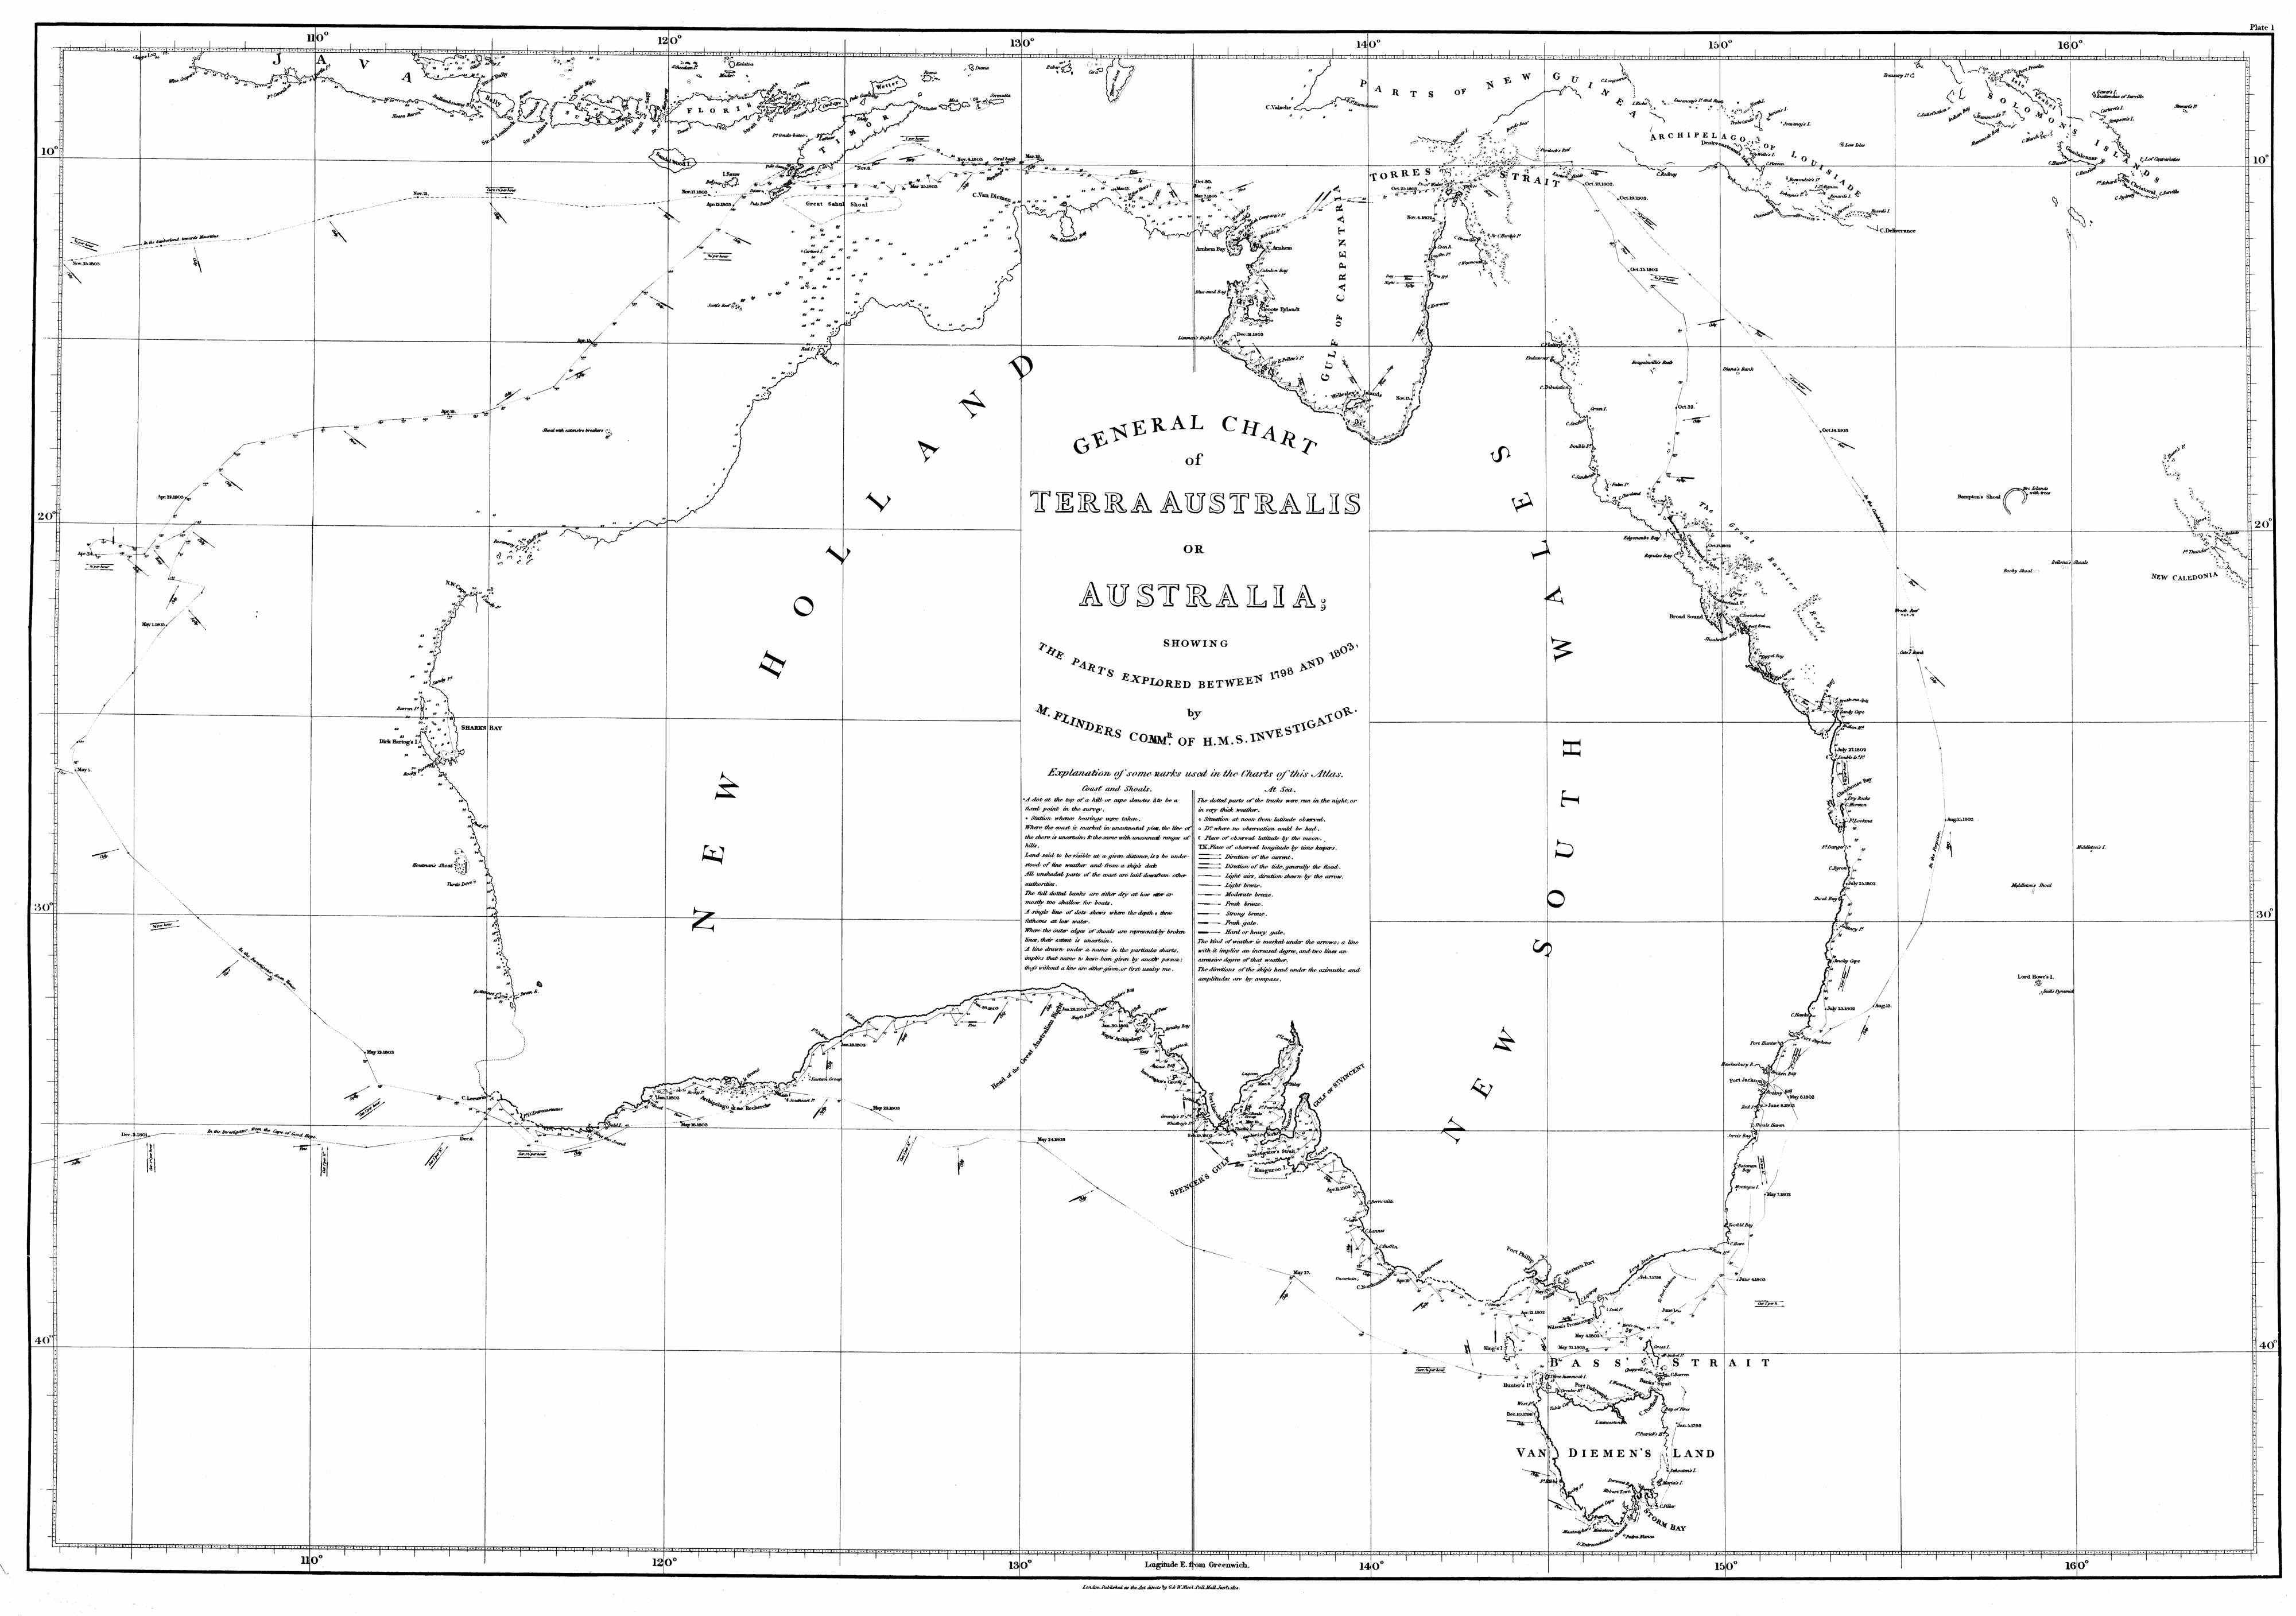 General Chart of Terra Australis or Australia Showing The Parts Explored Between 1798 and 1803 by M. Flinders Commander of H.M.S Investigator and his Cat, Trim. (Courtesy of University of South Australia)